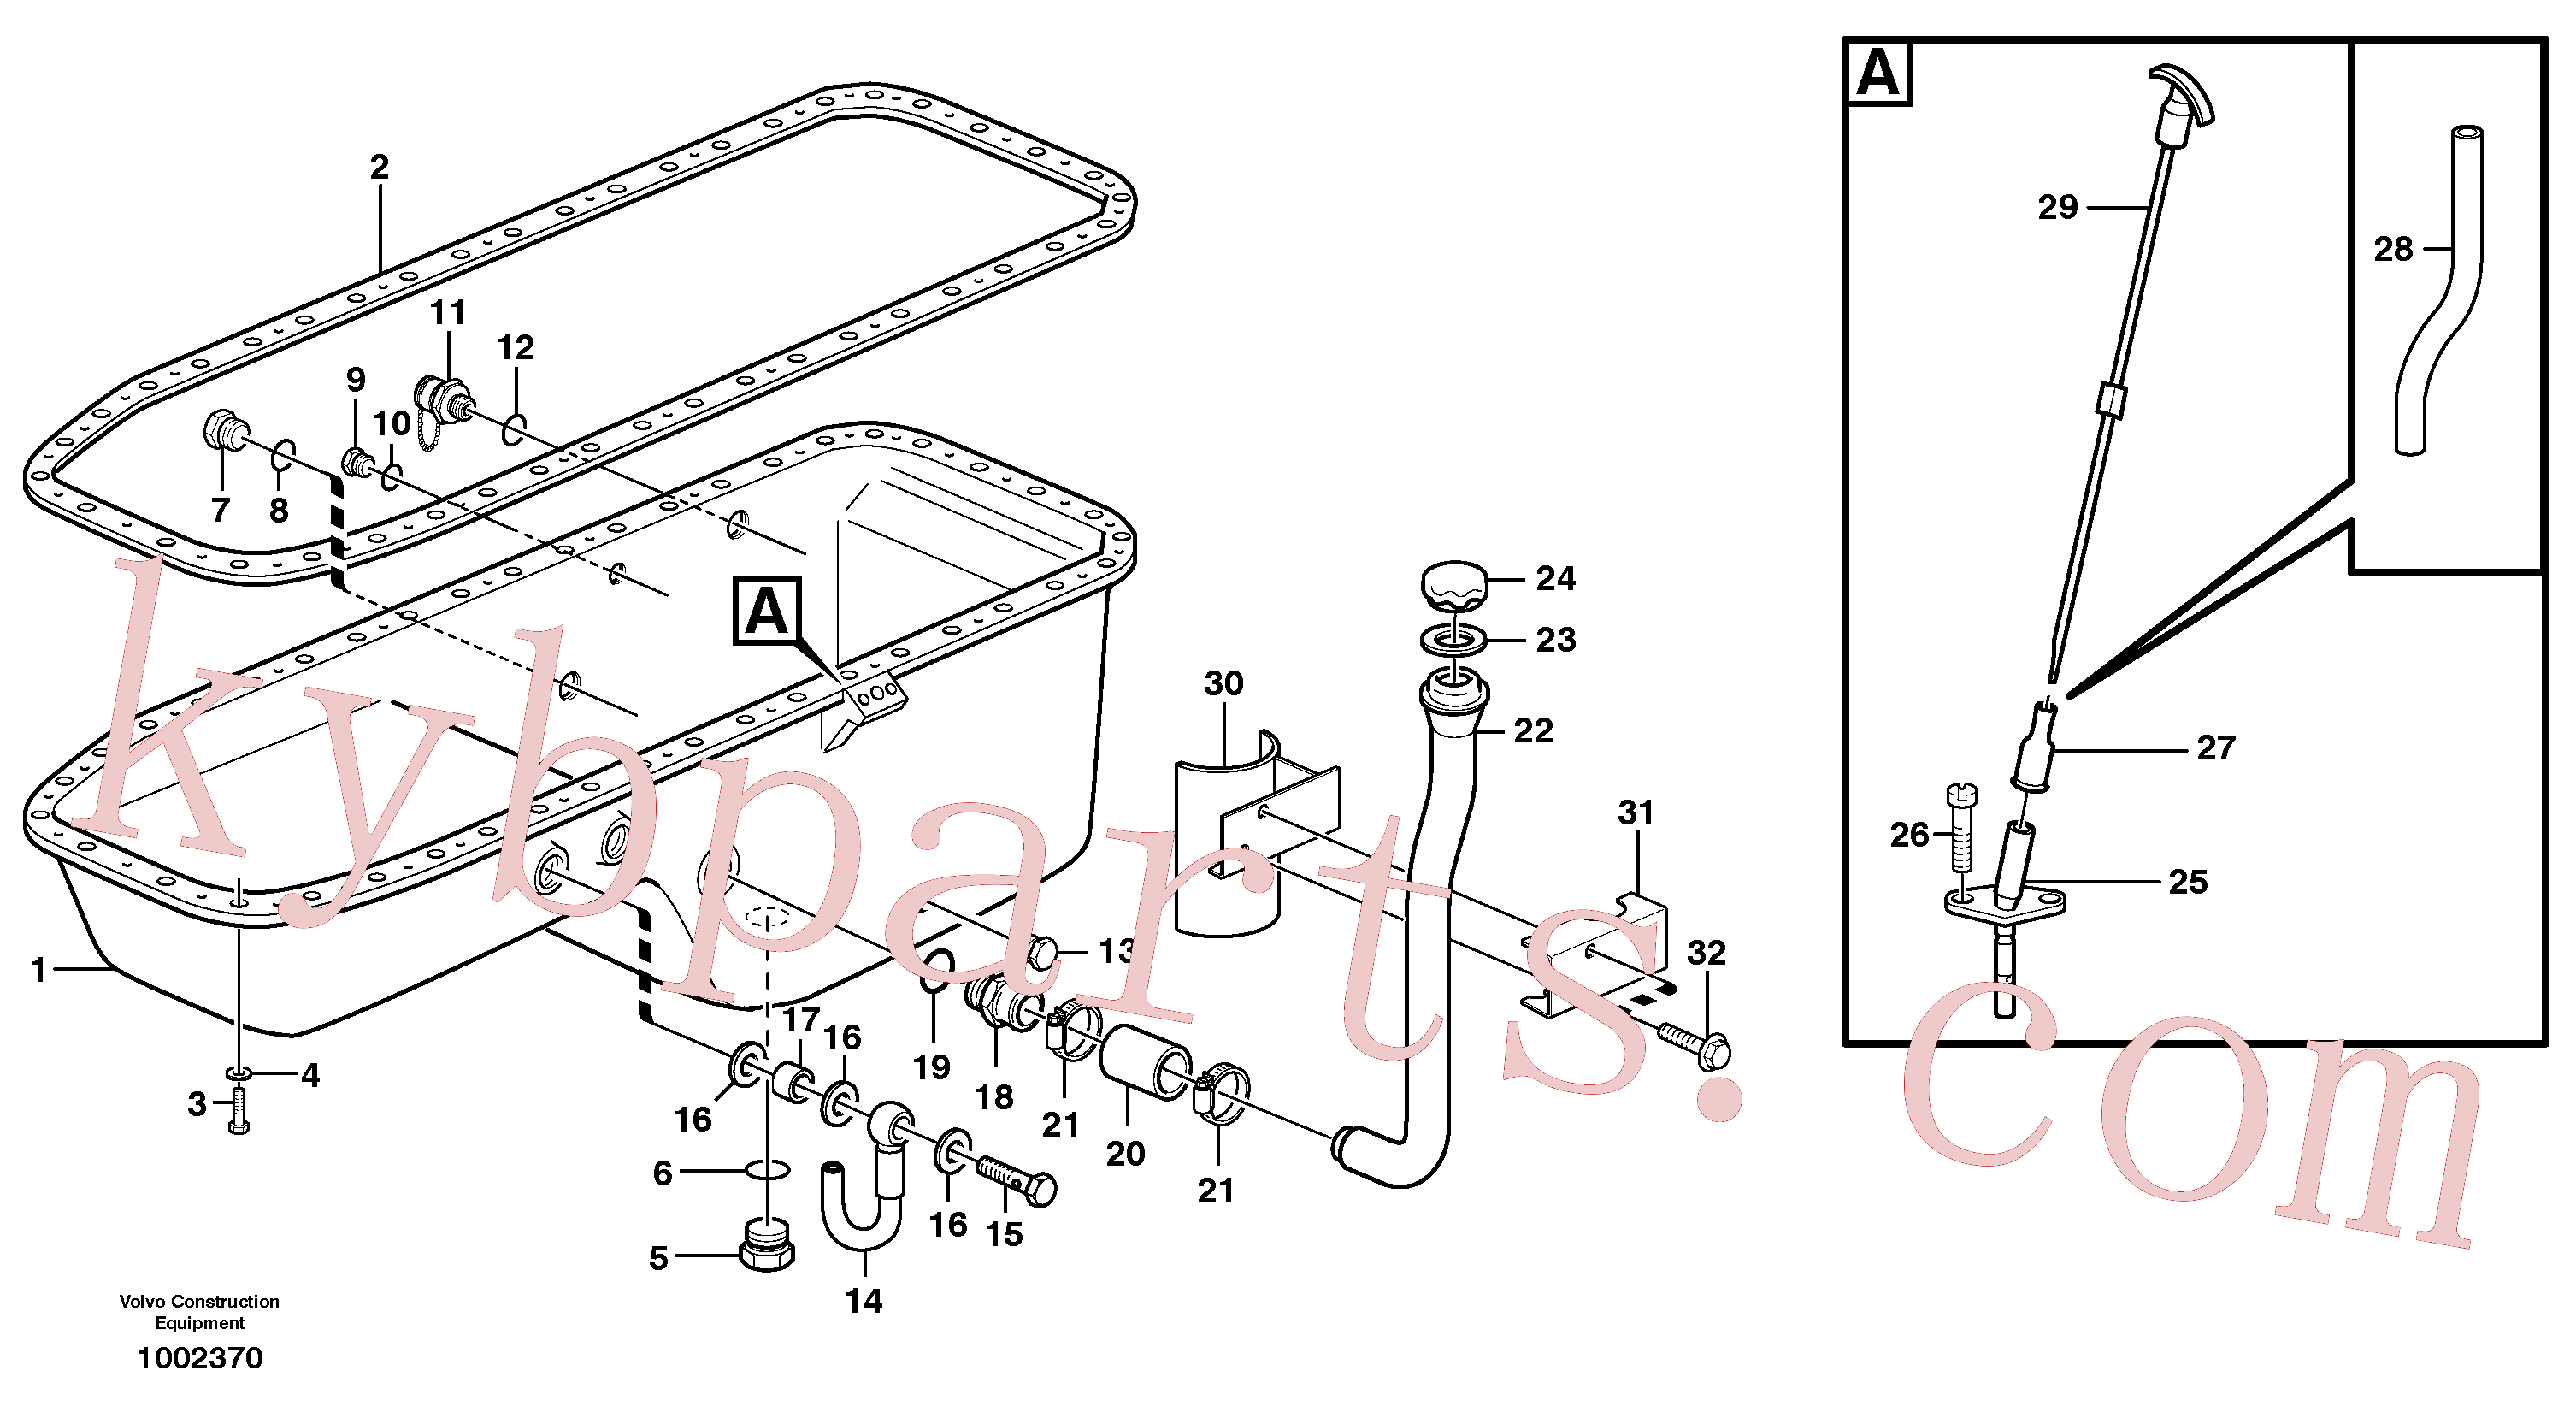 VOE3547599 for Volvo Oil sump(1002370 assembly)